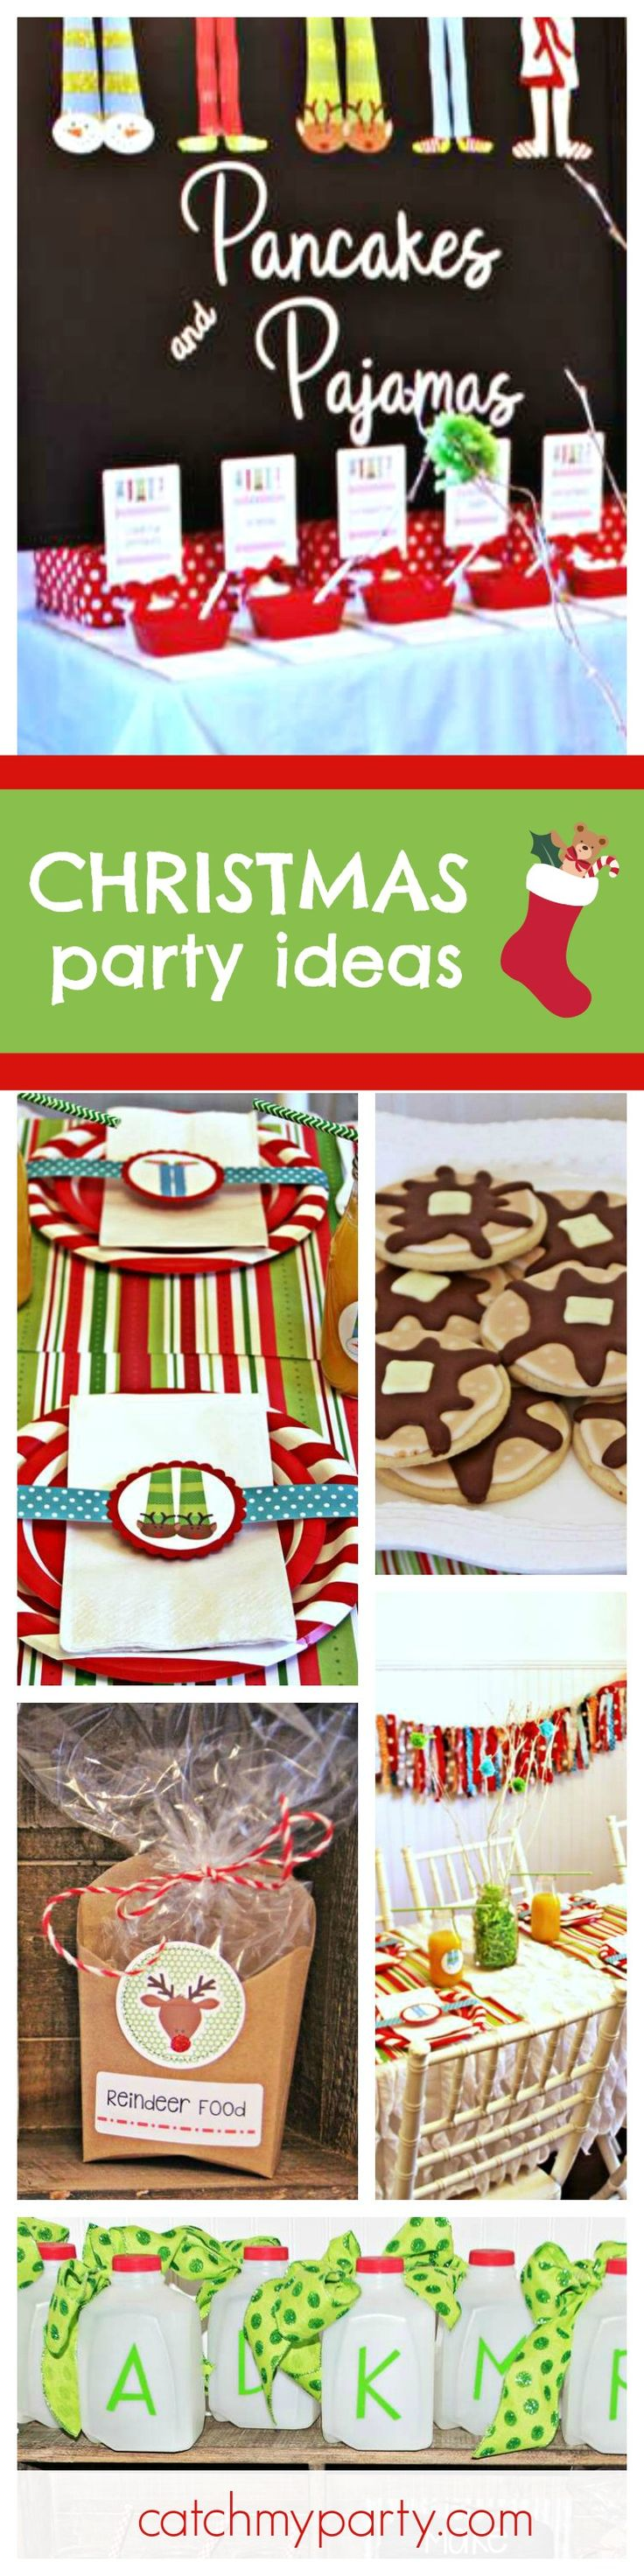 Check out this fantastic Pancakes & Pajamas Christmas party. The holiday table settings are so cute! See more party ideas and share yours at CatchMyParty.com